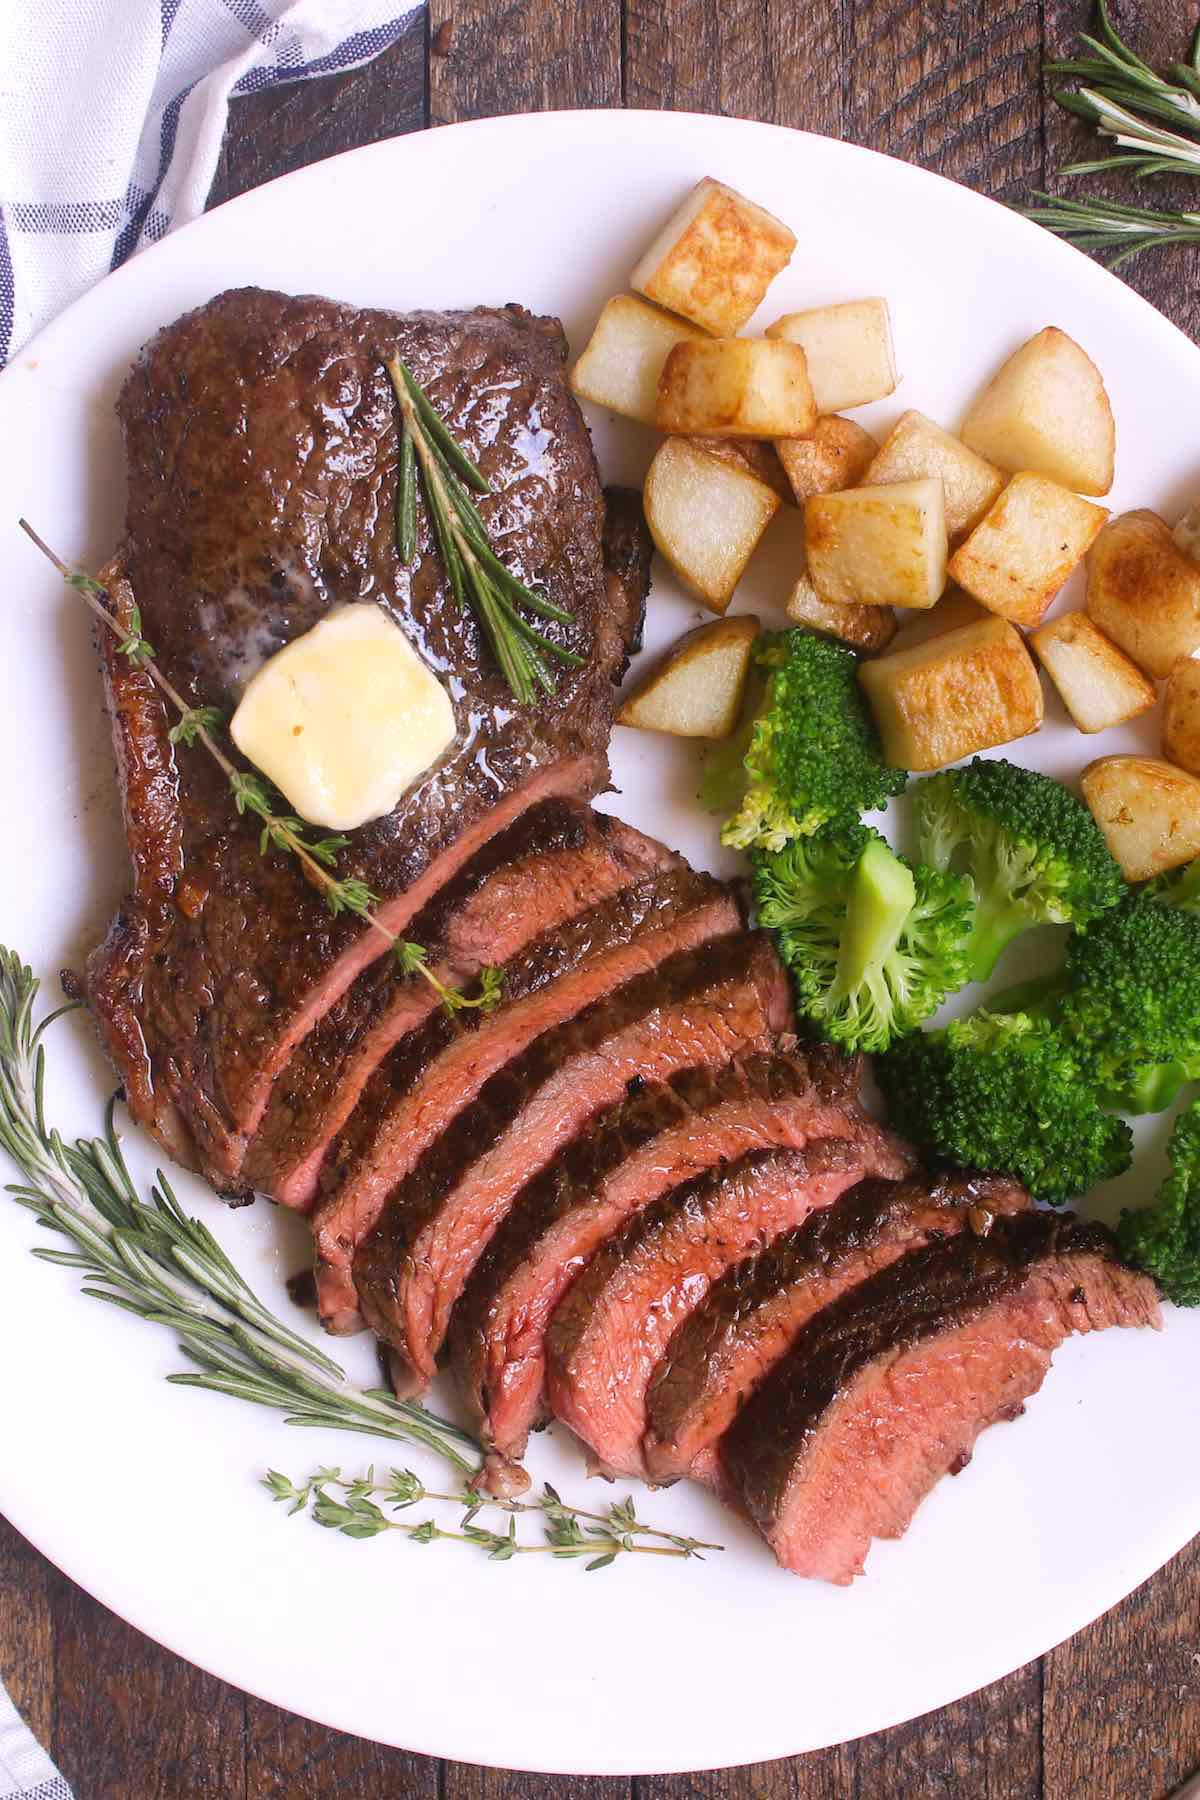 Overhead view of a sirloin steak dinner consisting of sliced top sirloin garnished with fresh rosemary, thyme and a pat of butter, served with sautéed potatoes and broccoli